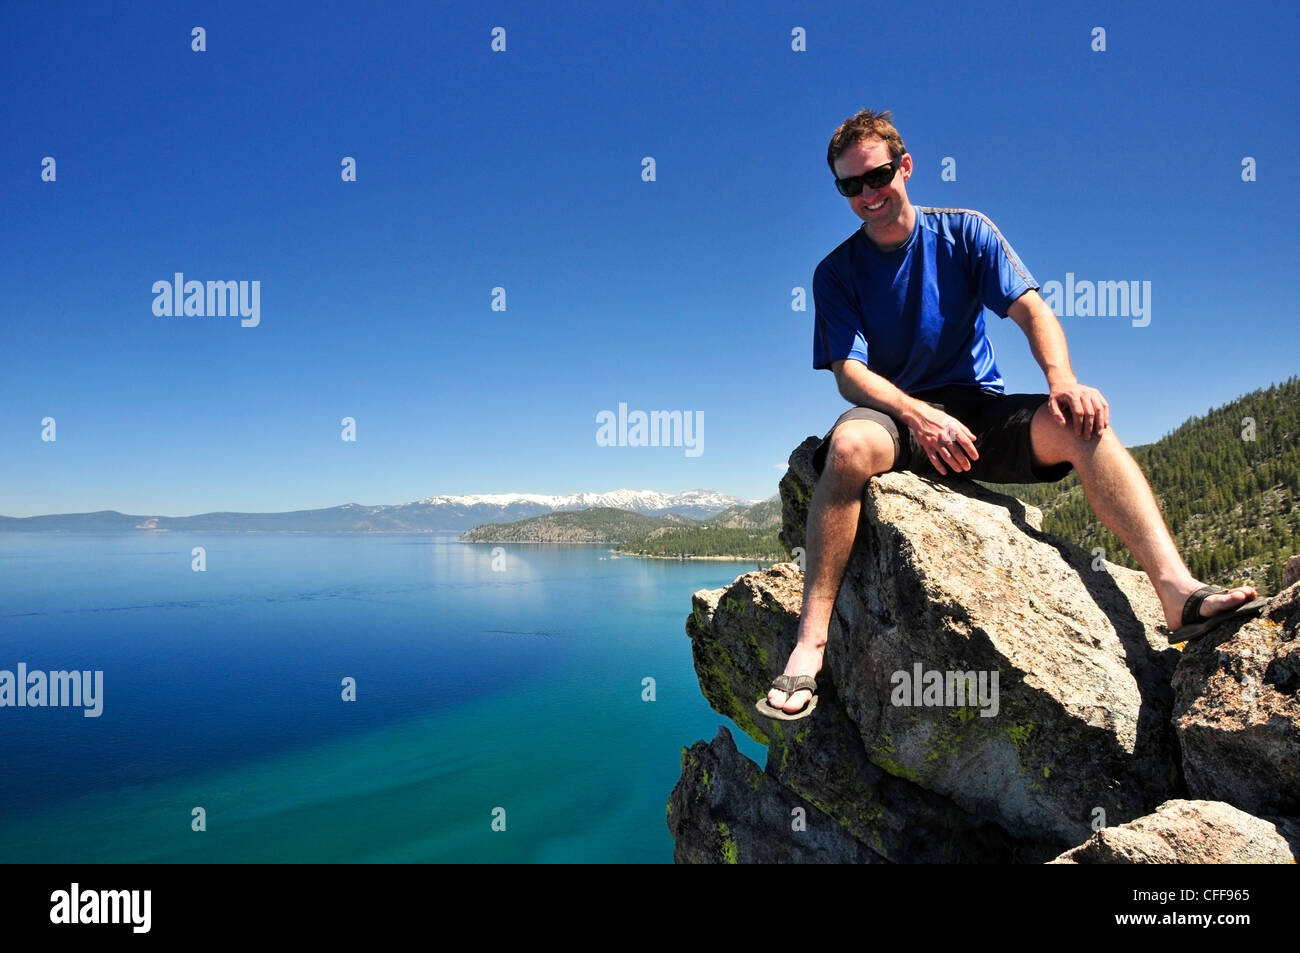 A man relaxes on a boulder overlooking Lake Tahoe in the summer, Nevada. - Stock Image